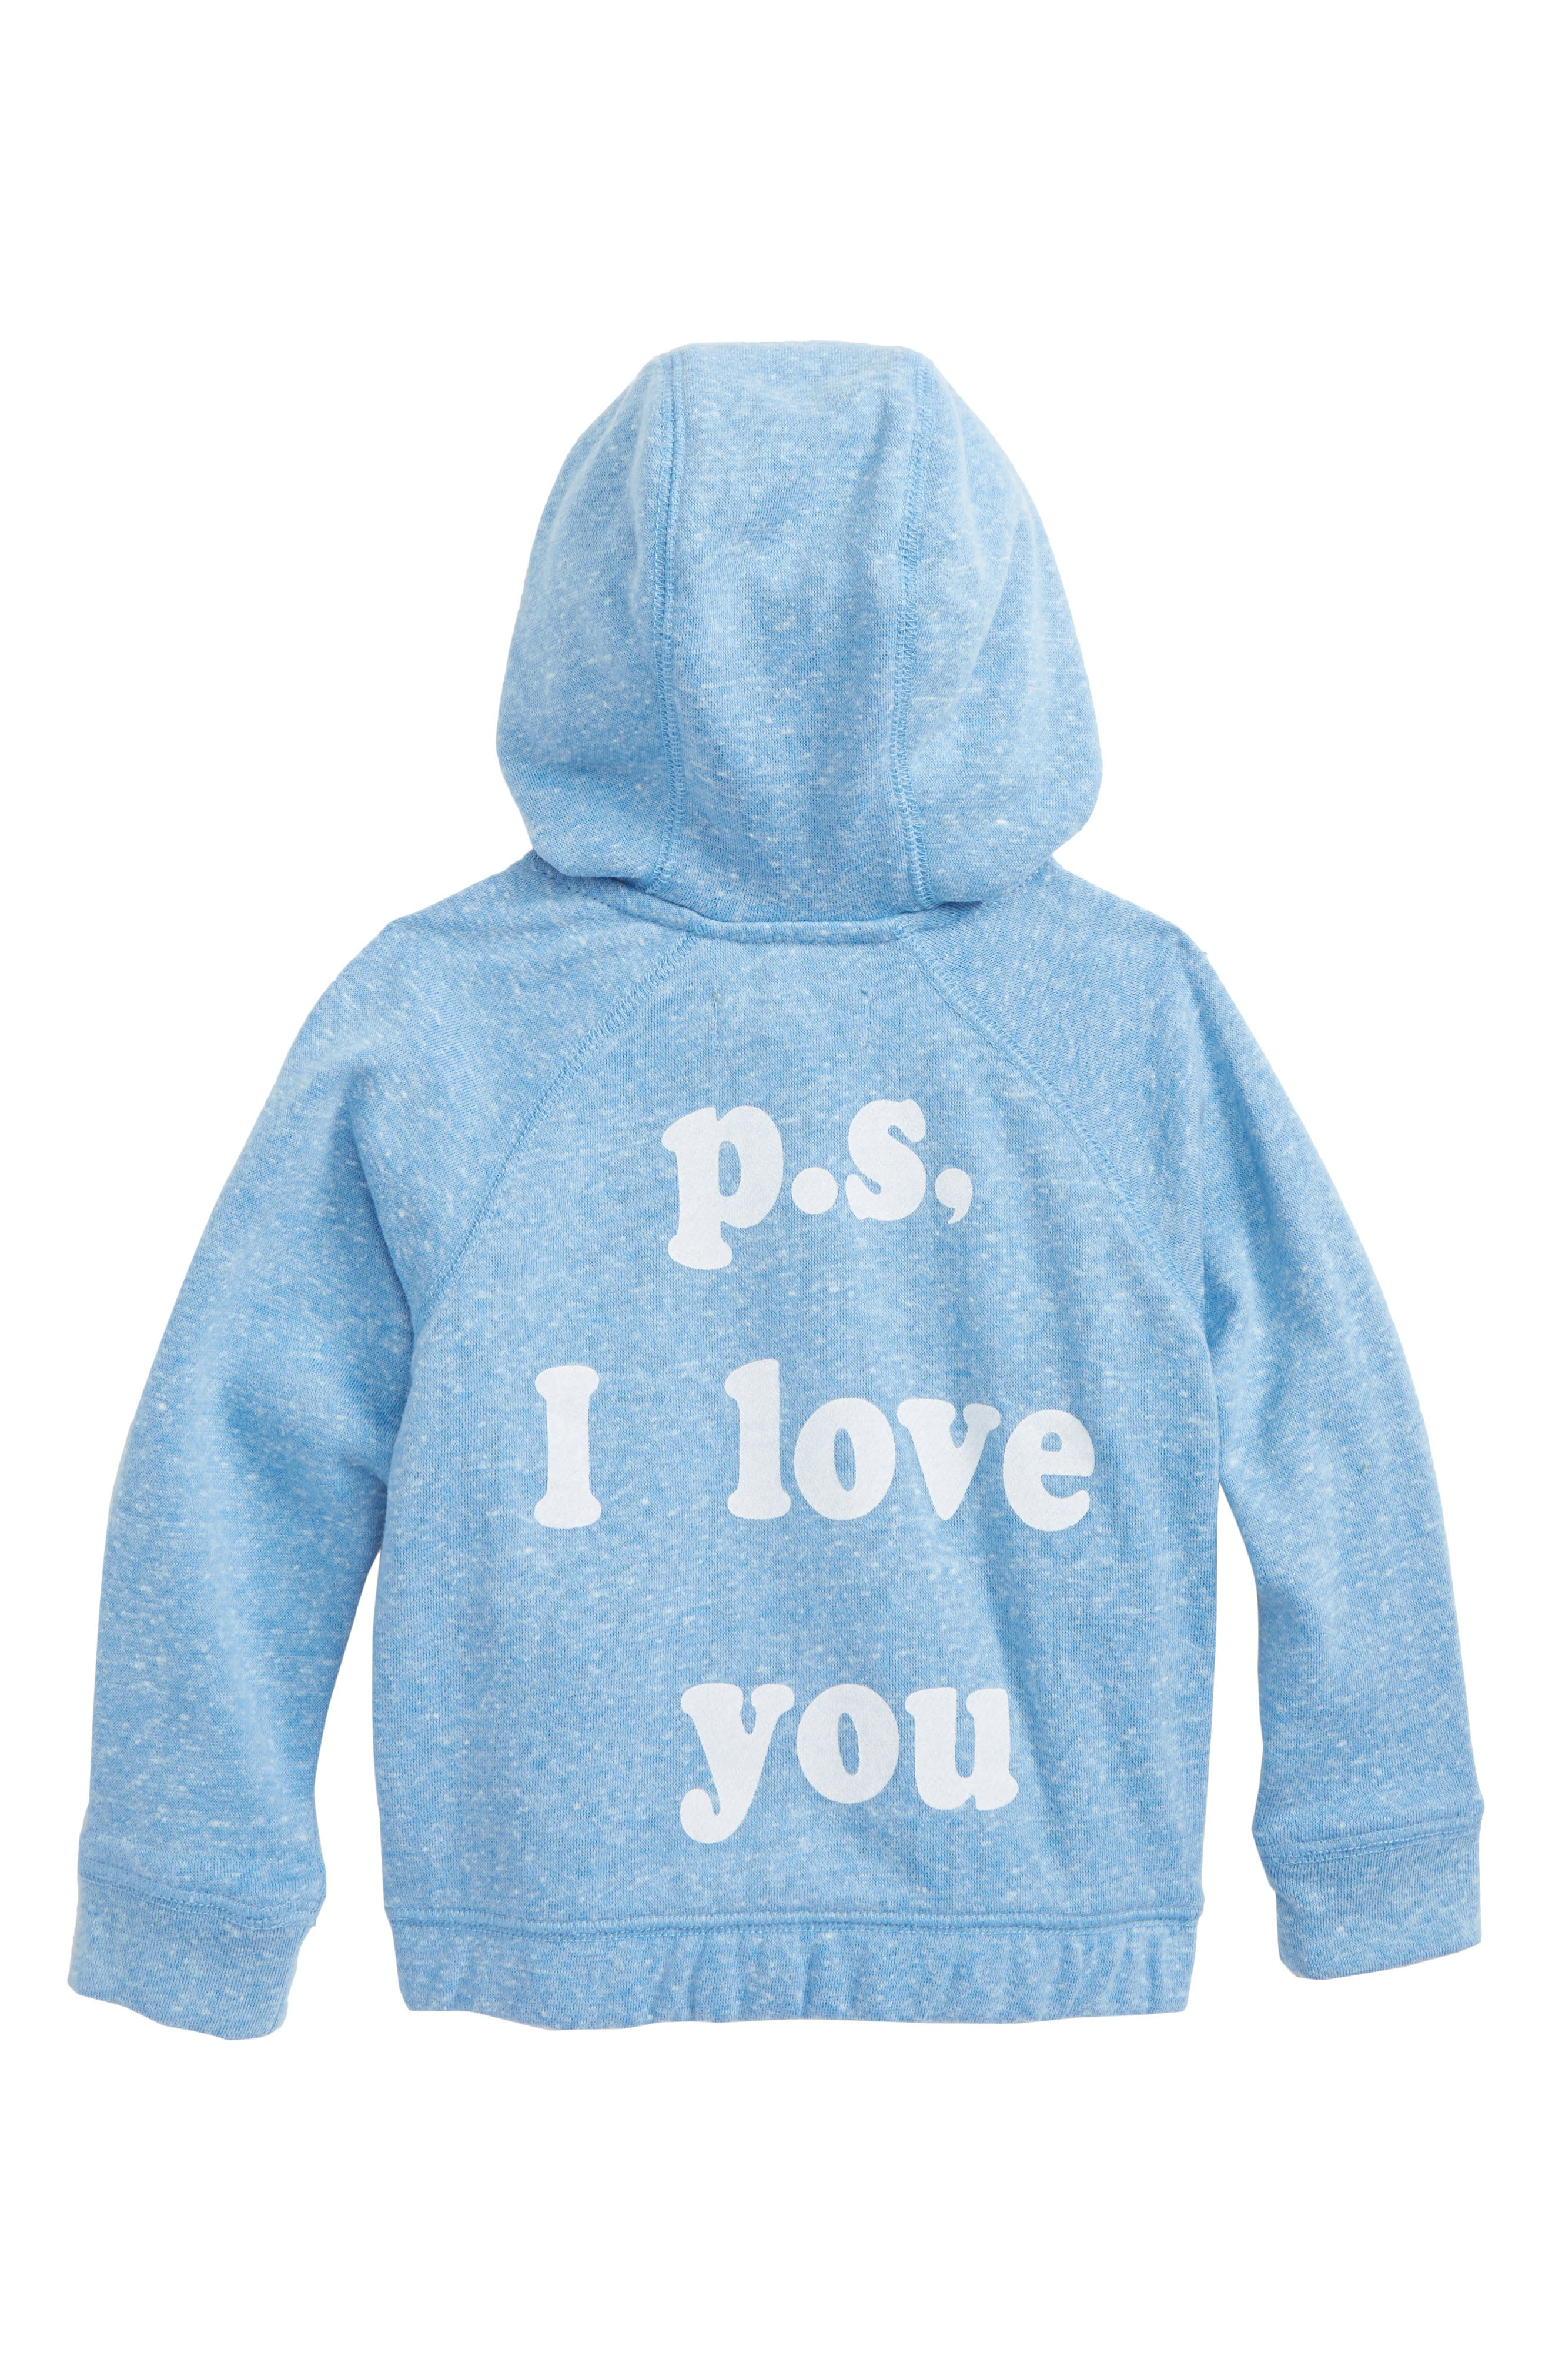 PS I Love You Full Zip Hoodie,                             Alternate thumbnail 2, color,                             Blue